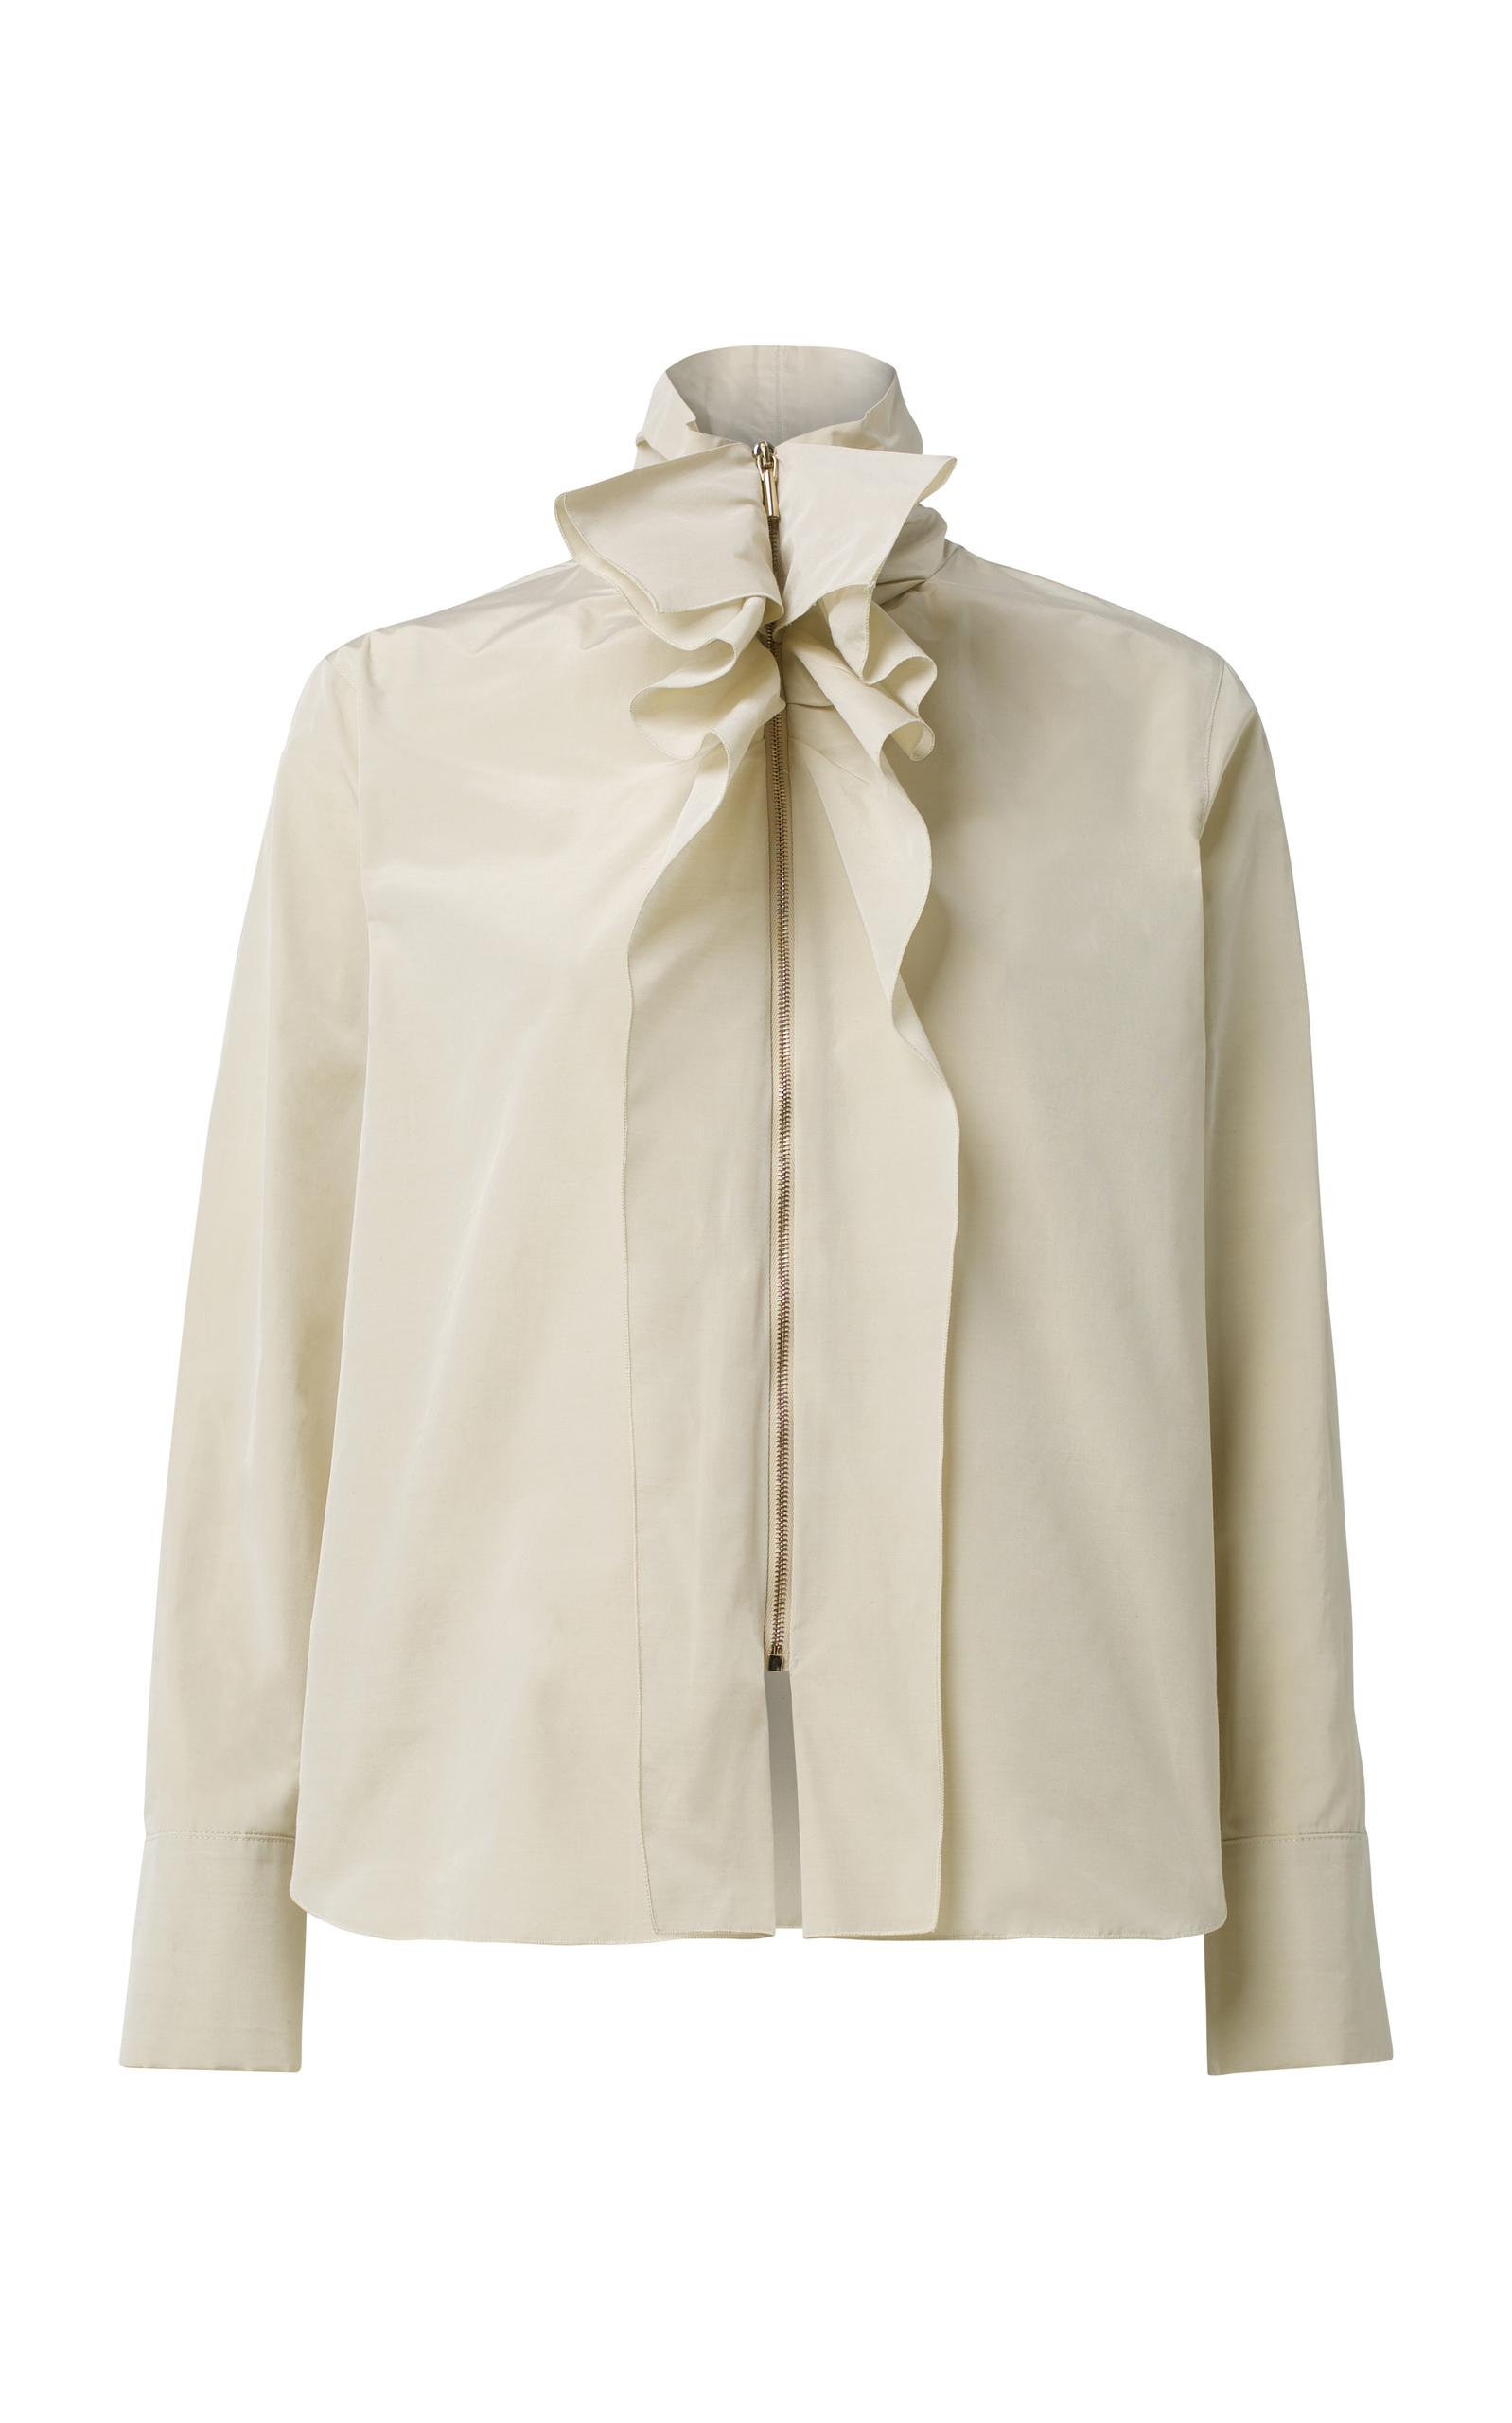 Revolution Blouse Schumacher Dorothee Lyst White Ruffle Taffeta In TO1IInqwEB